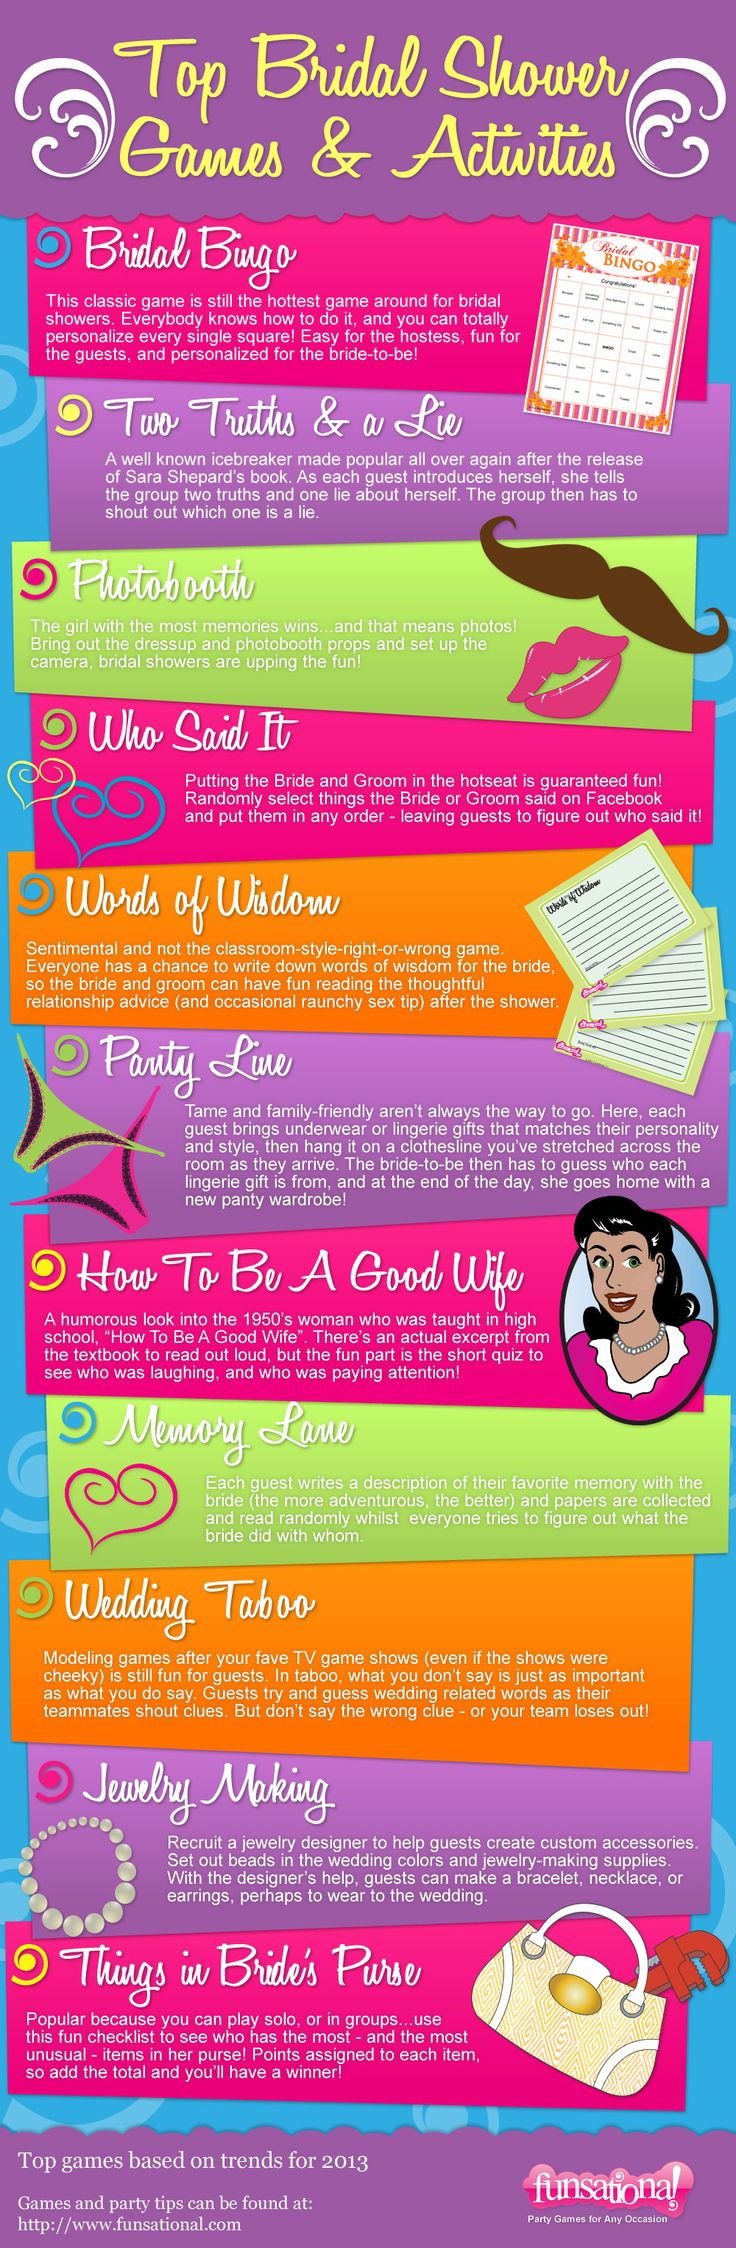 Top bridal shower games and activities for 2013...